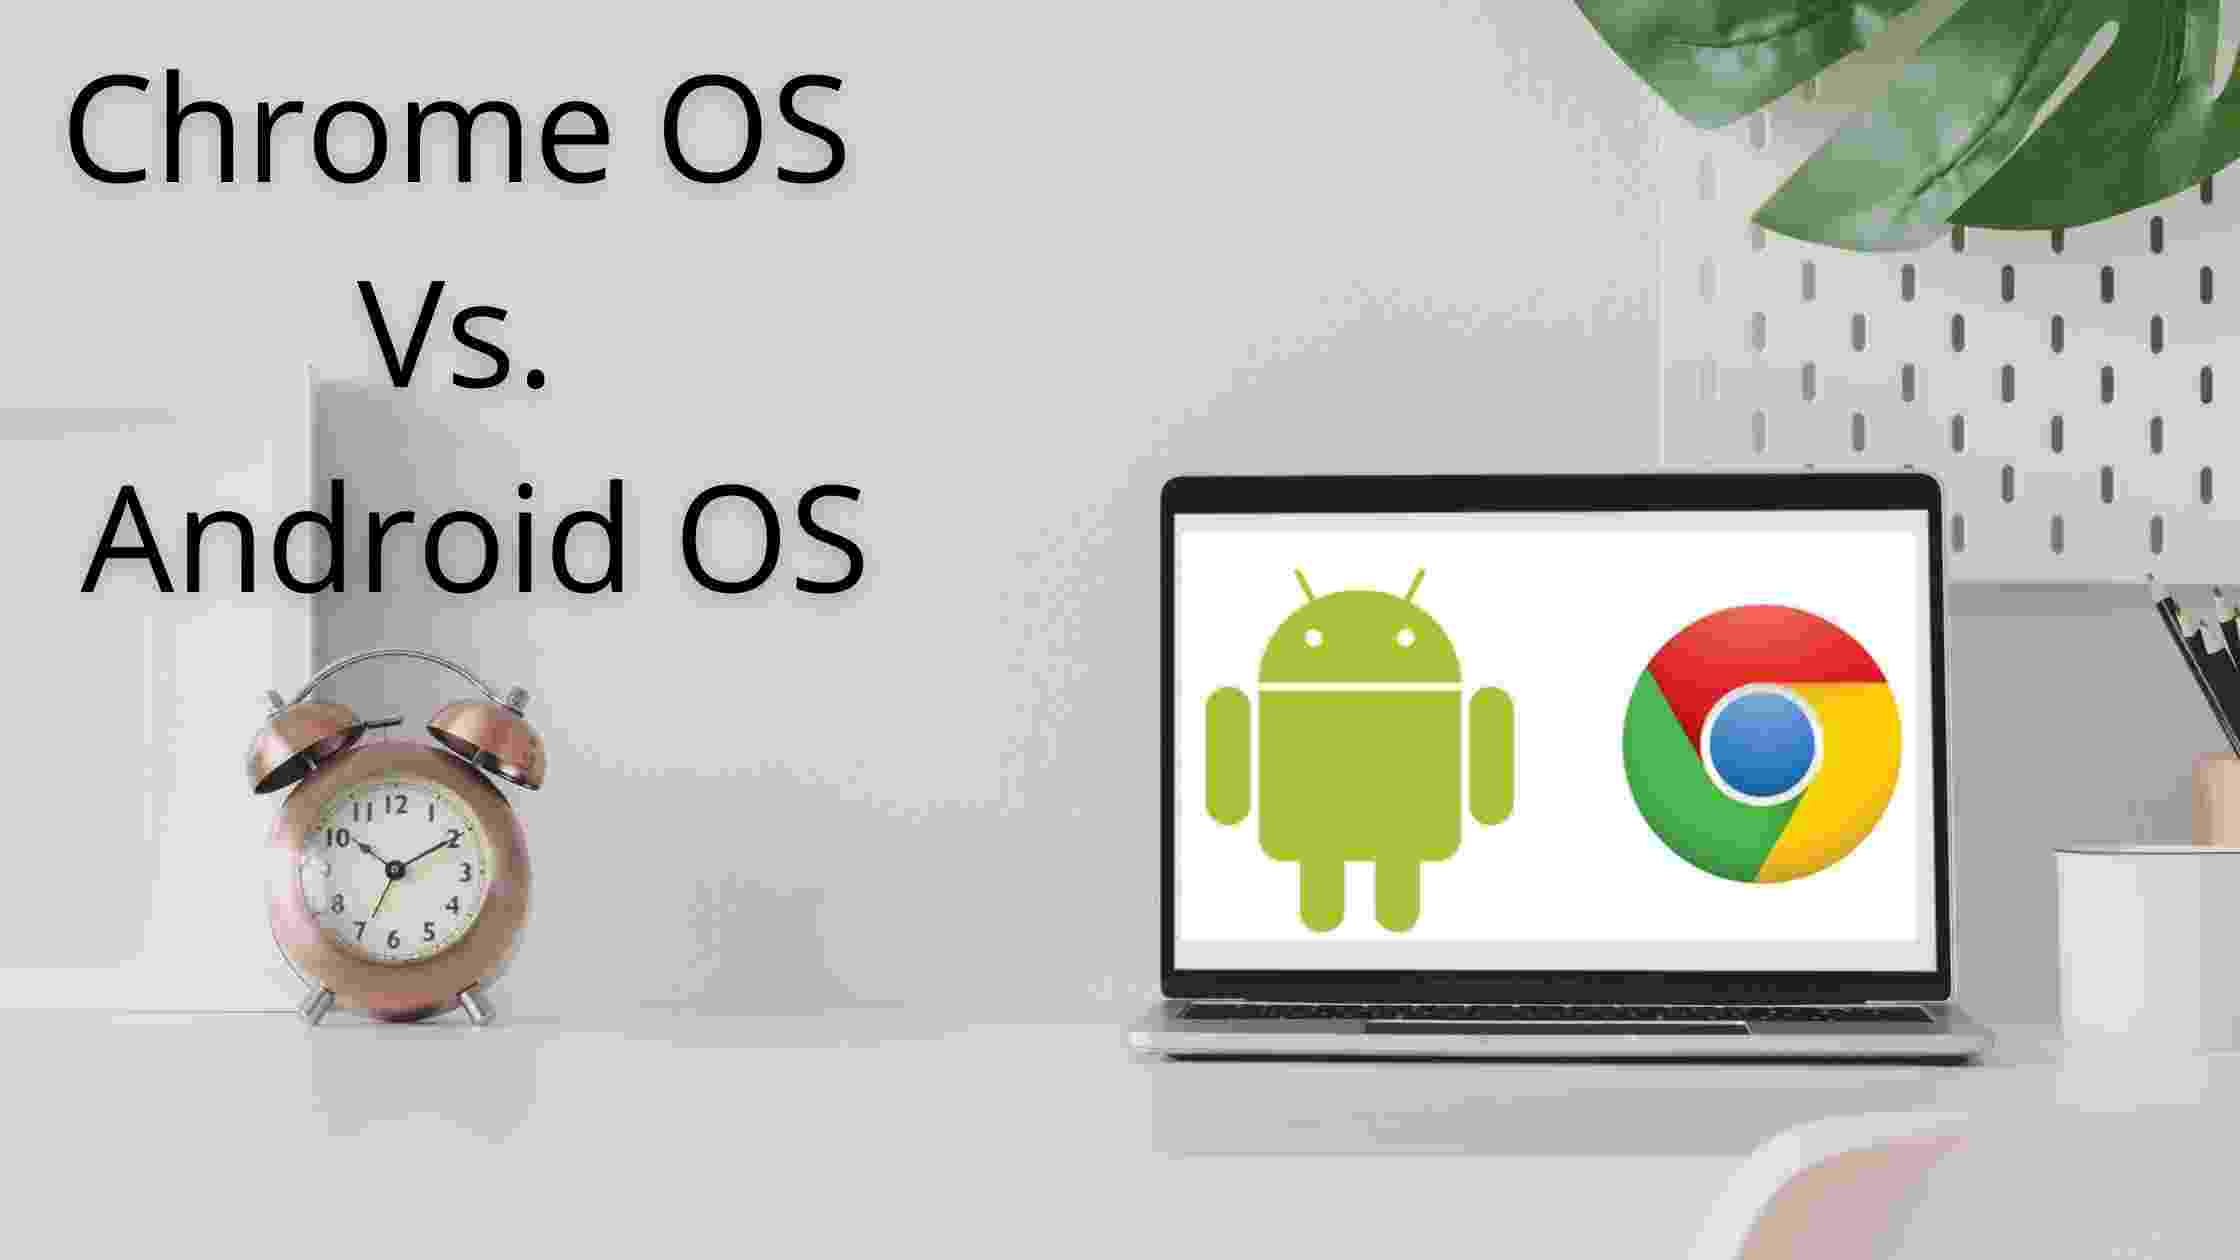 Difference Between Chrome OS and Android OS